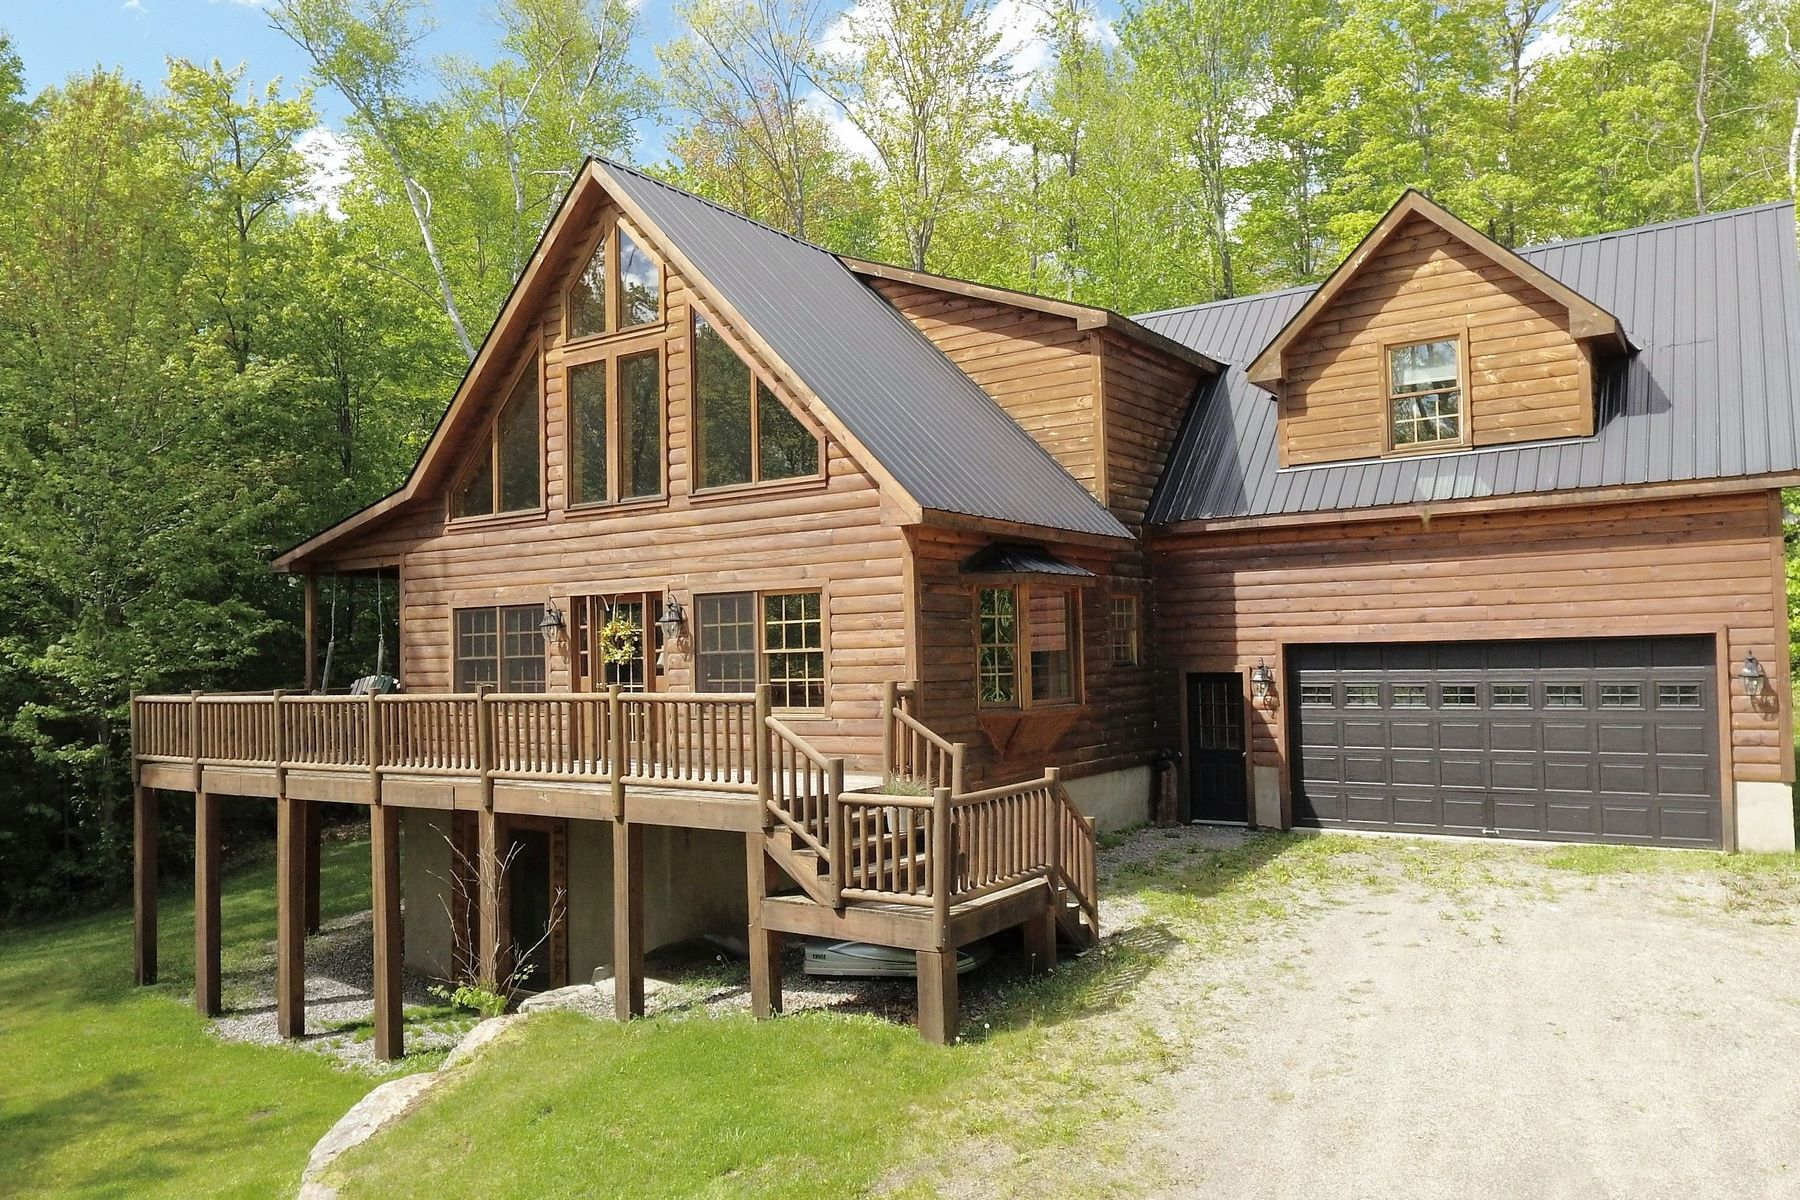 Casa Unifamiliar por un Venta en Beautiful Vacation Home 380 Wonder Ln, Jamaica, Vermont, 05343 Estados Unidos